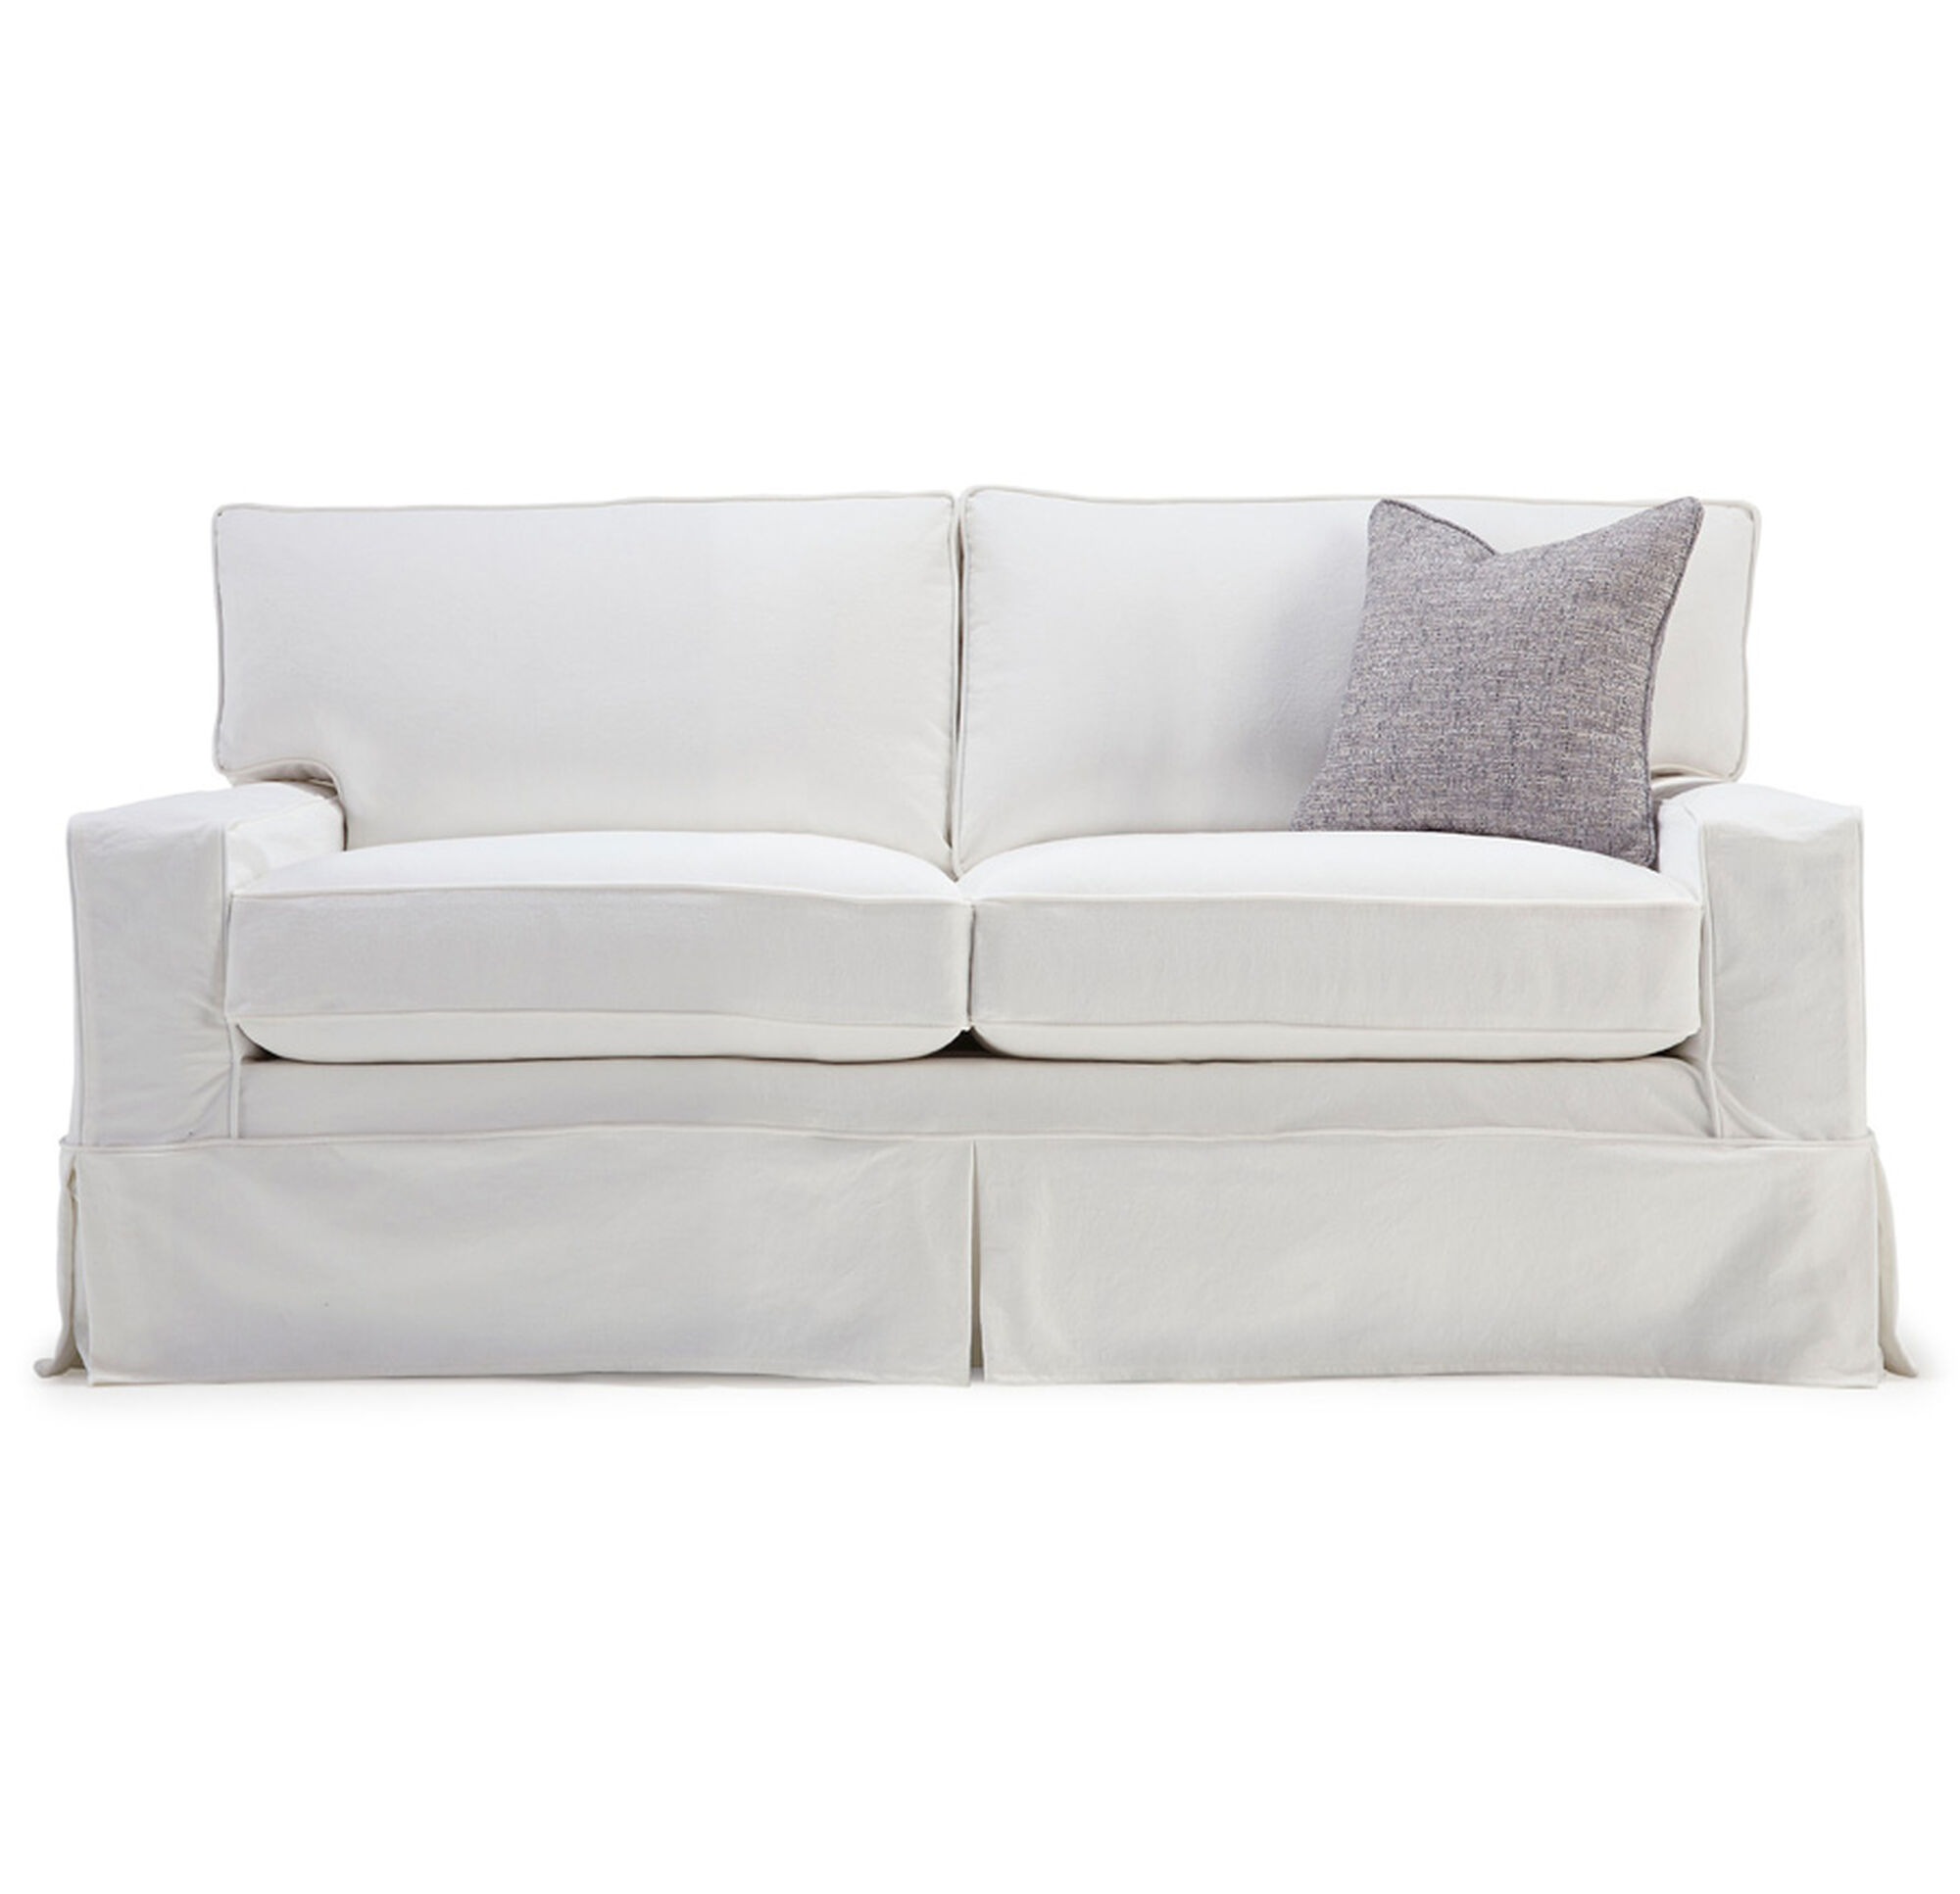 ALEX II SOFA SLIPCOVER LOOSE SKIRT